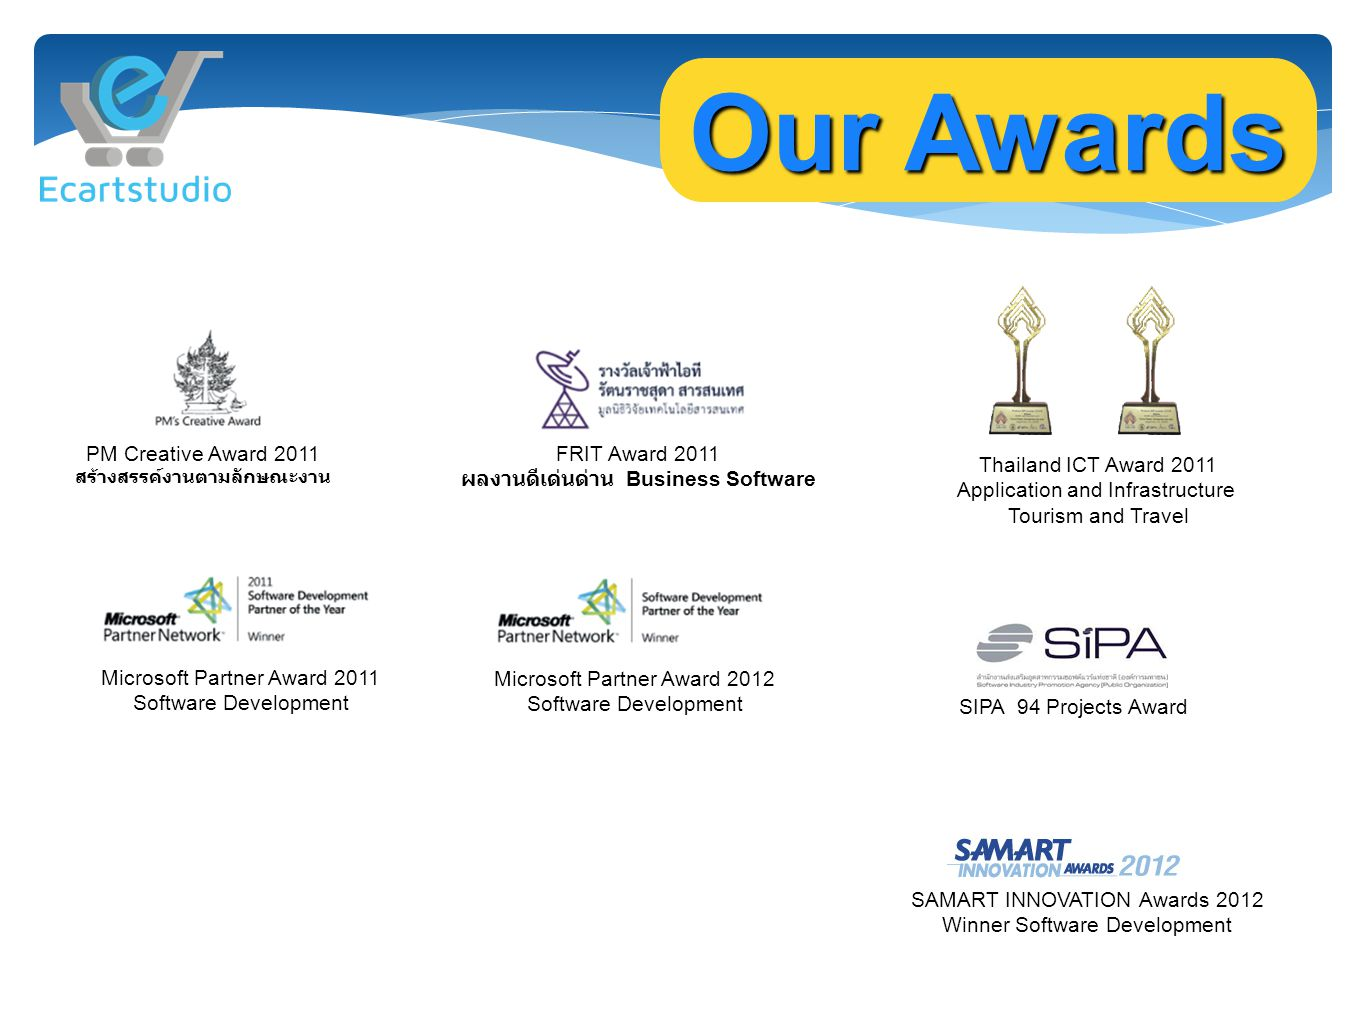 Our Awards PM Creative Award 2011 สร้างสรรค์งานตามลักษณะงาน FRIT Award 2011 ผลงานดีเด่นด่าน Business Software Microsoft Partner Award 2011 Software Development SAMART INNOVATION Awards 2012 Winner Software Development SIPA 94 Projects Award Thailand ICT Award 2011 Application and Infrastructure Tourism and Travel Microsoft Partner Award 2012 Software Development